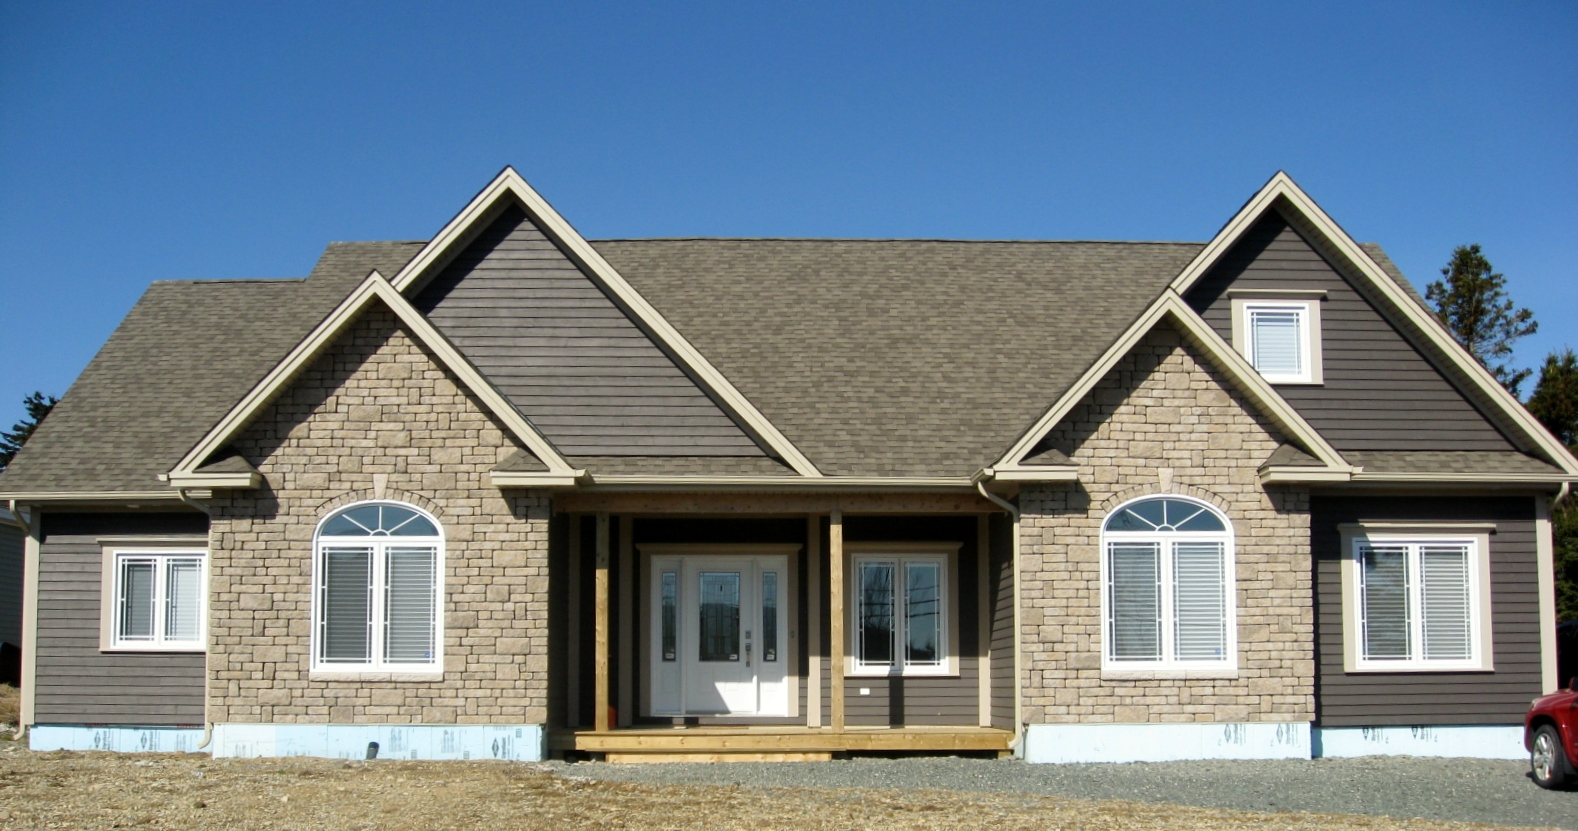 16 surprisingly nova scotia house plans building plans for Small house designs nova scotia